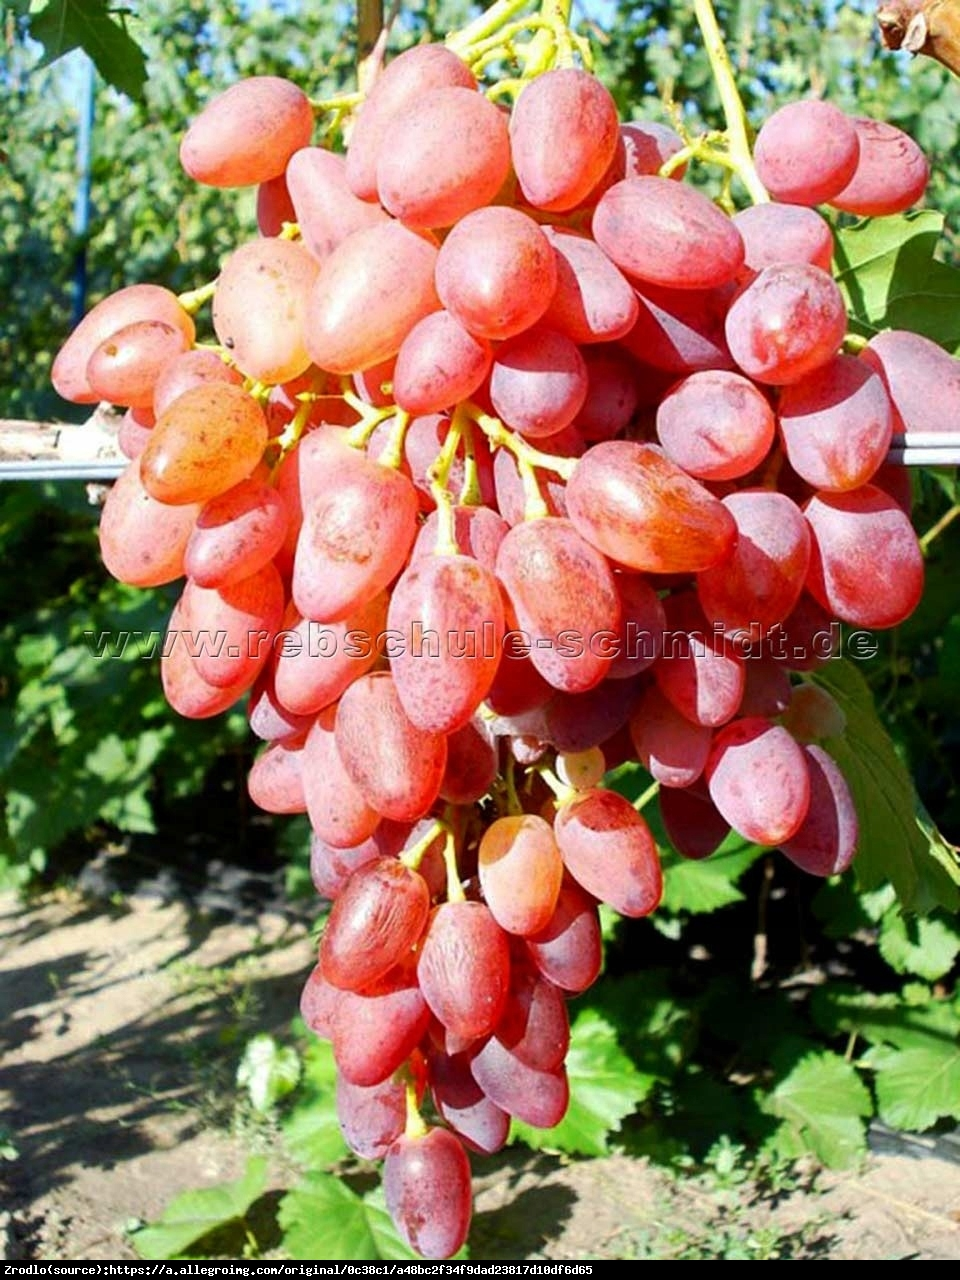 Winorośl Reliance - Bezpestkowe - Vitis Reliance